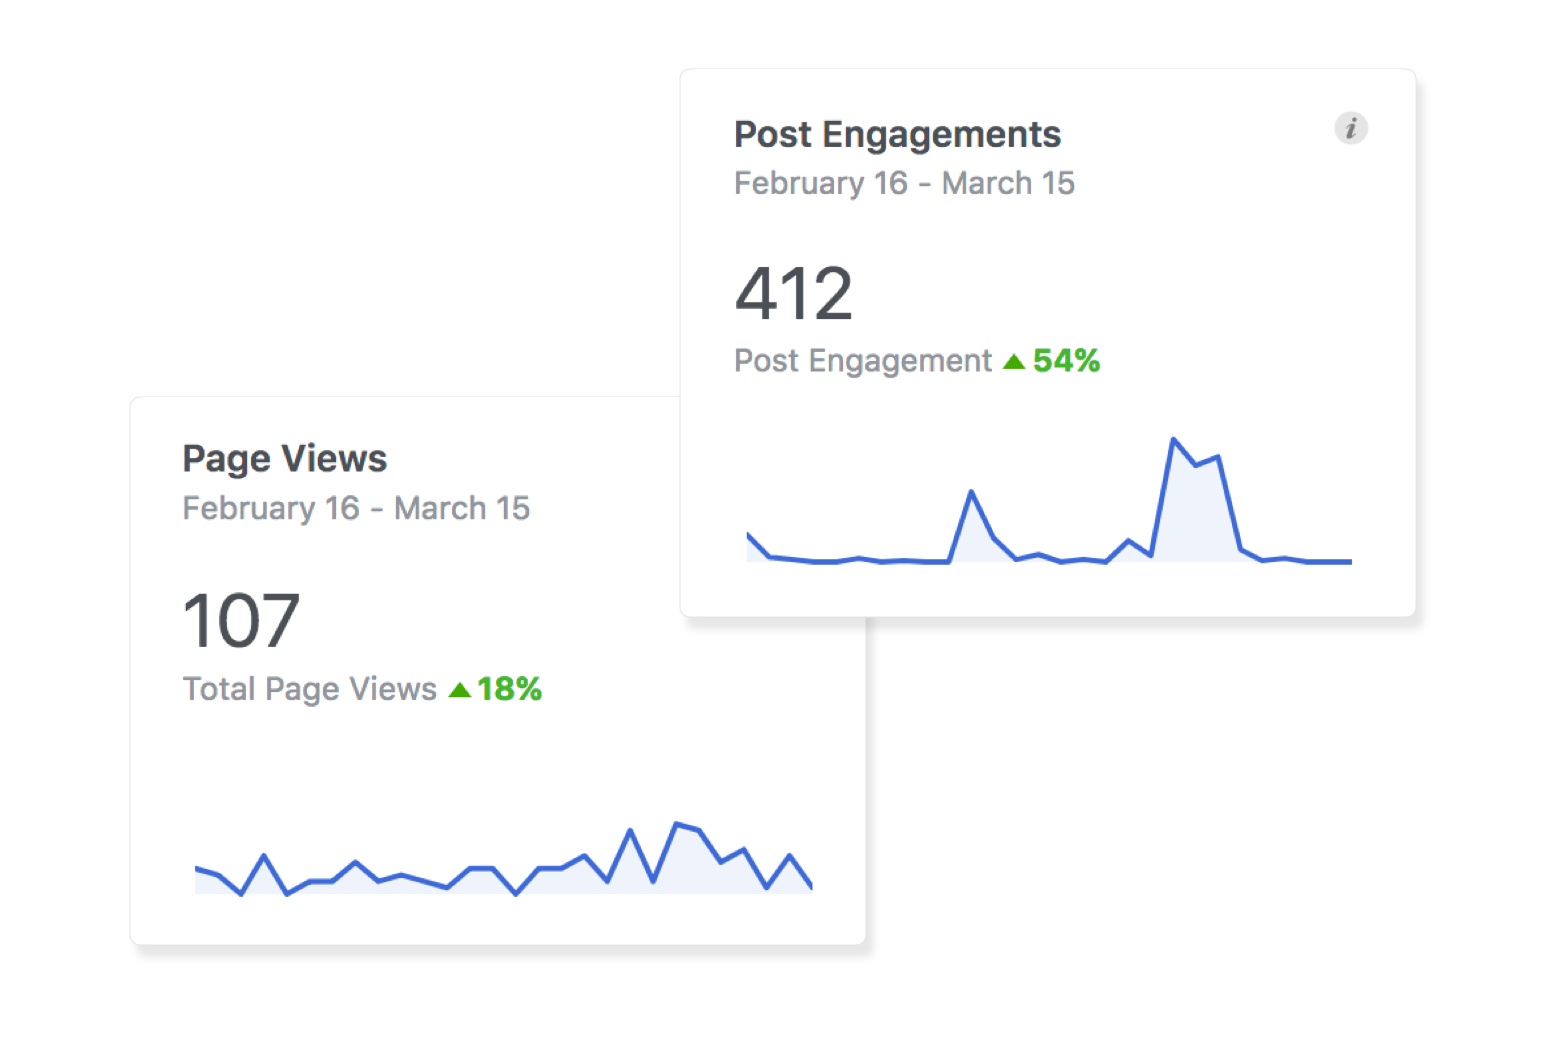 page-views-post-engagements